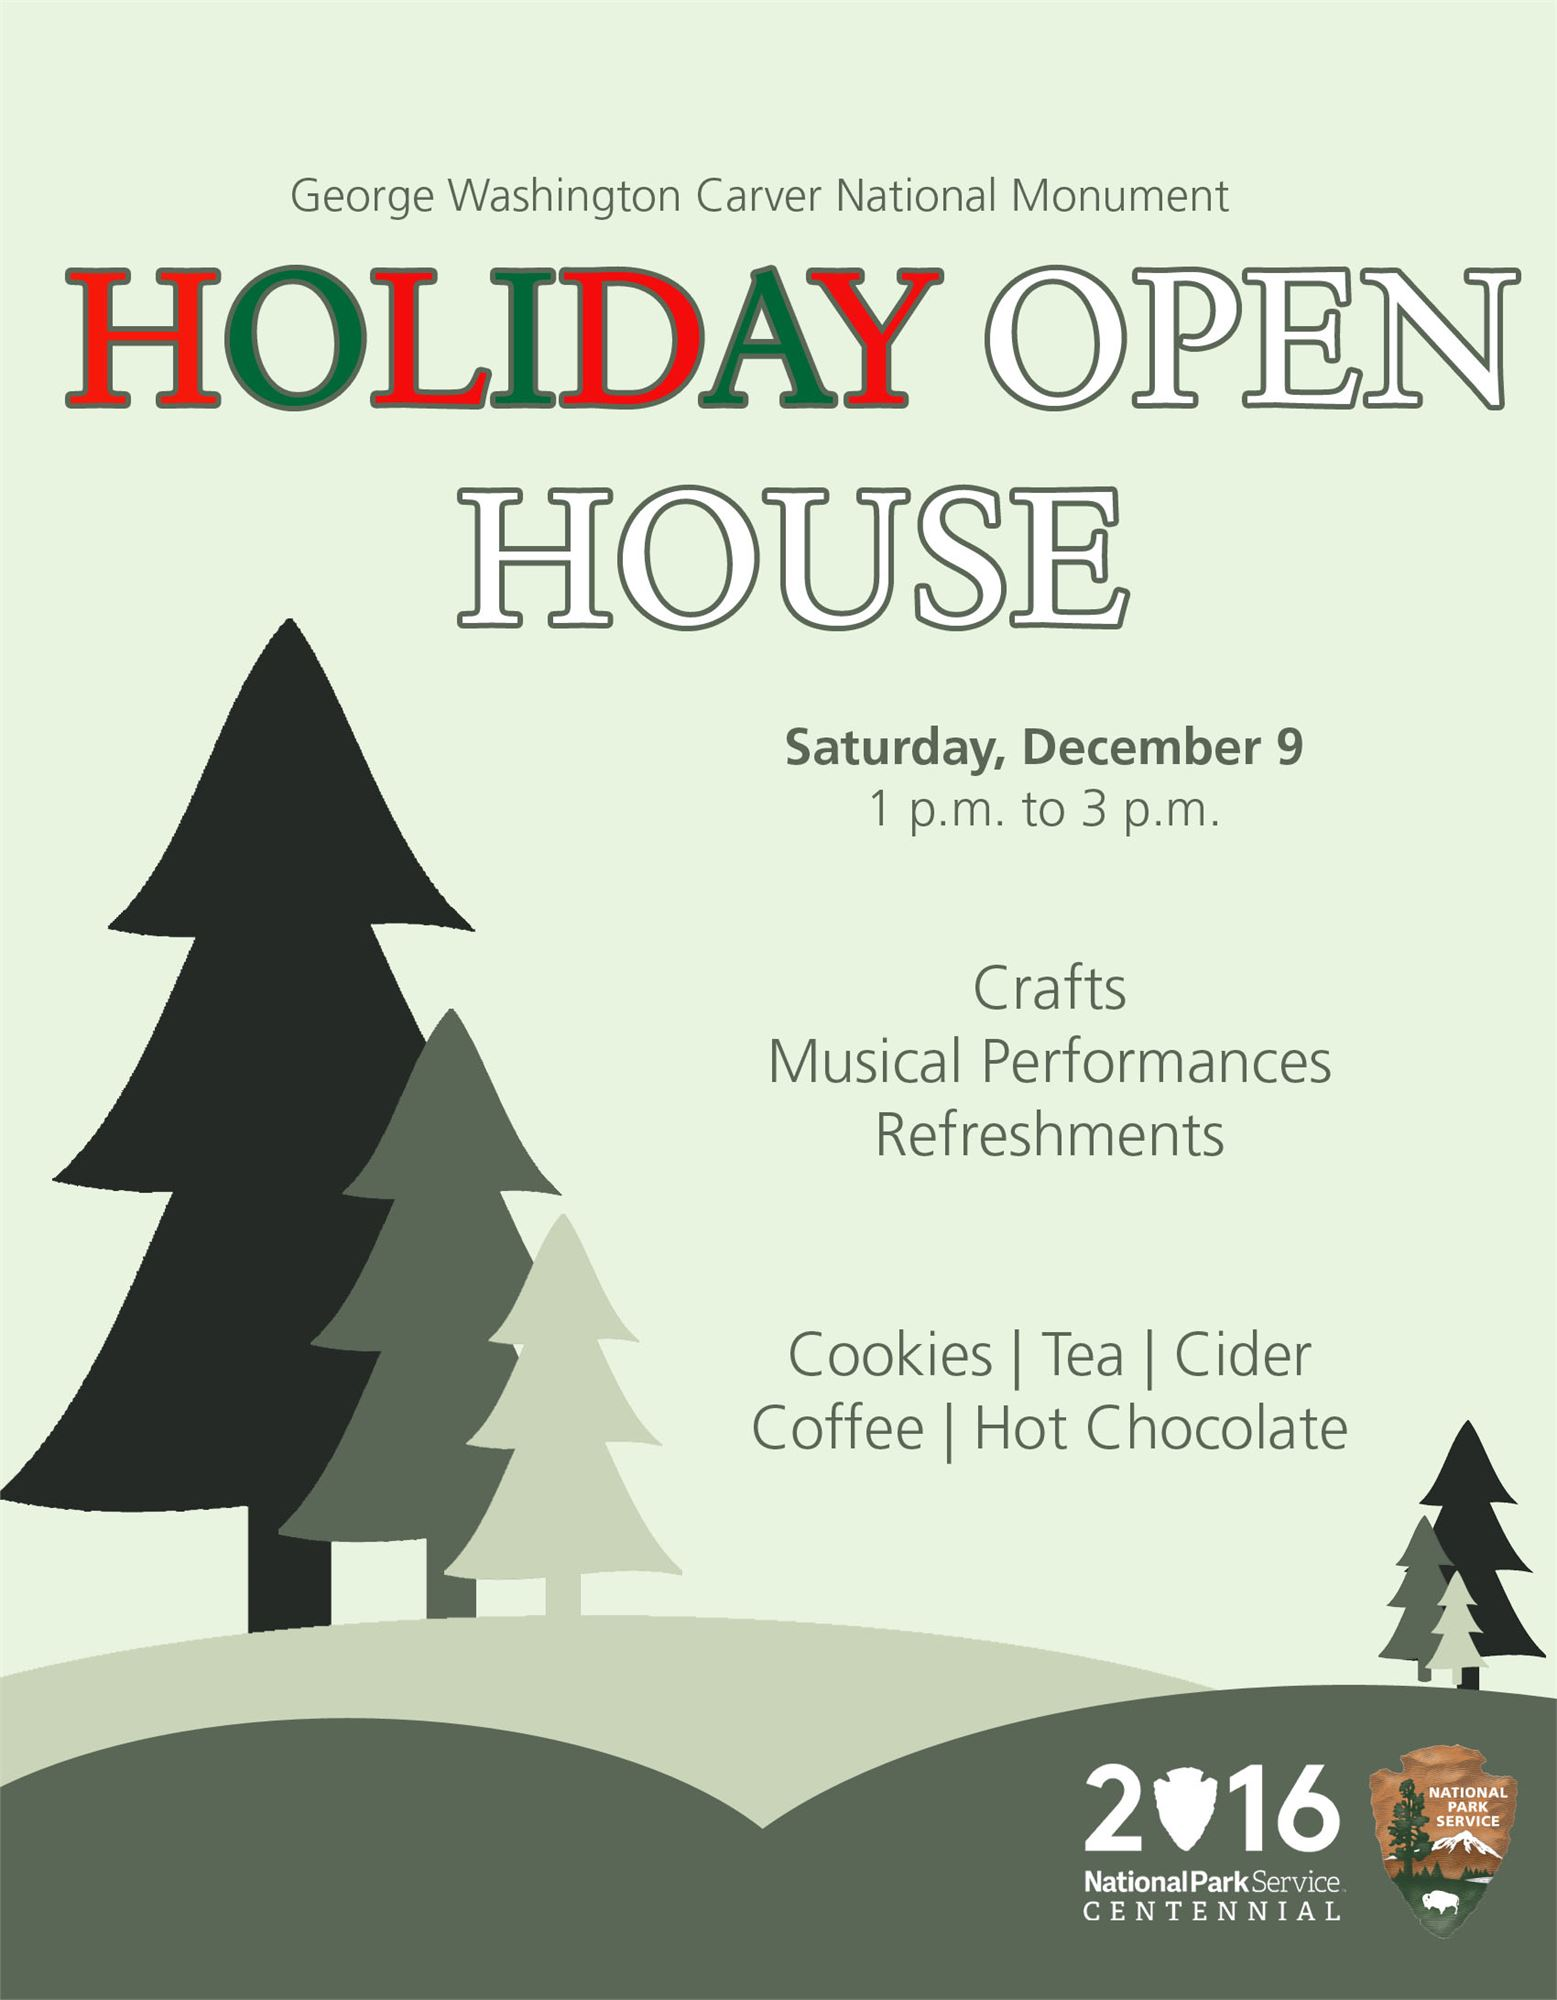 holiday open house at george washington carver national monument